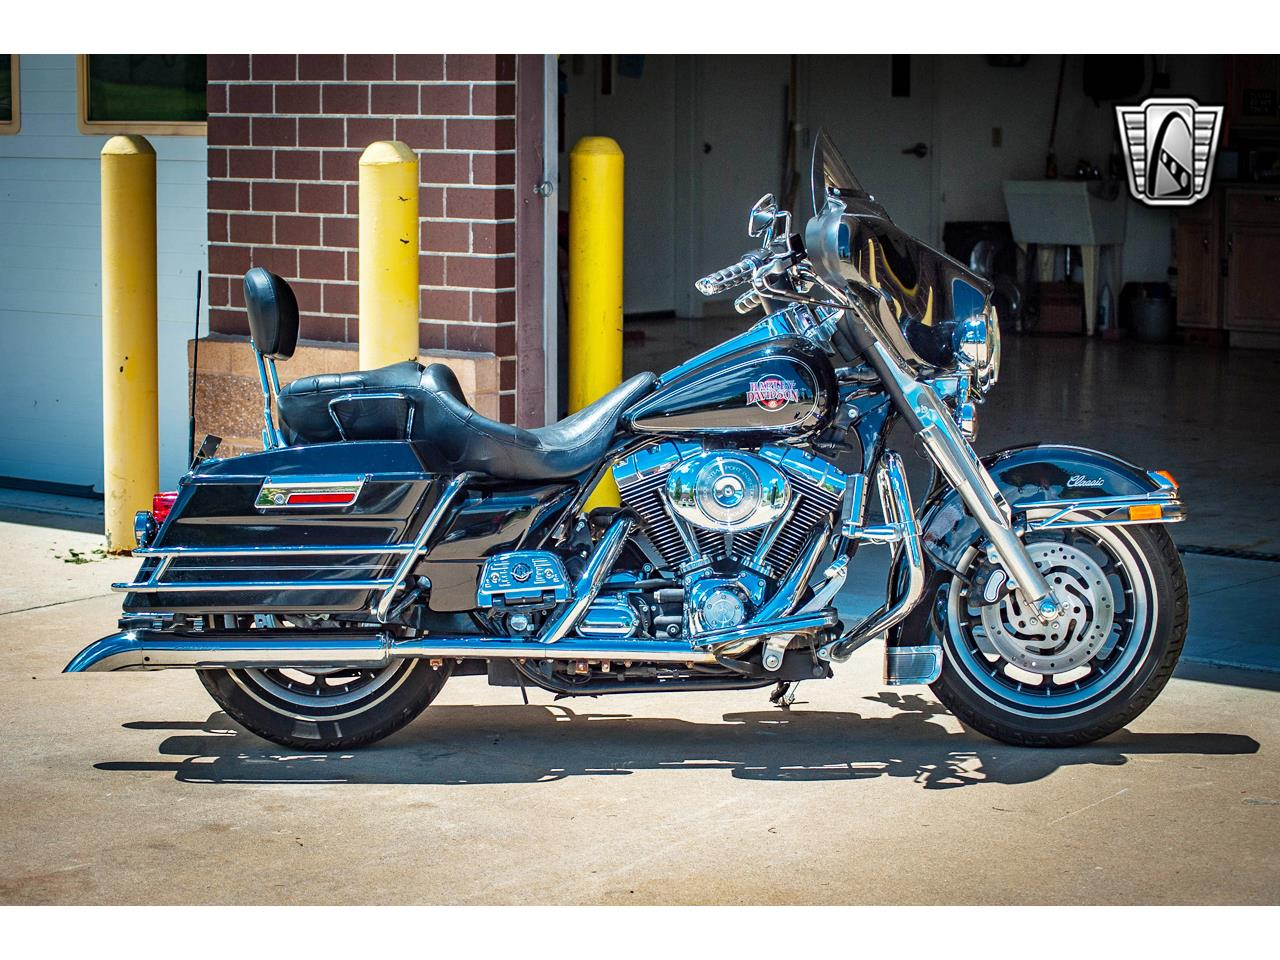 2004 Harley-Davidson Motorcycle for sale in O'Fallon, IL – photo 51